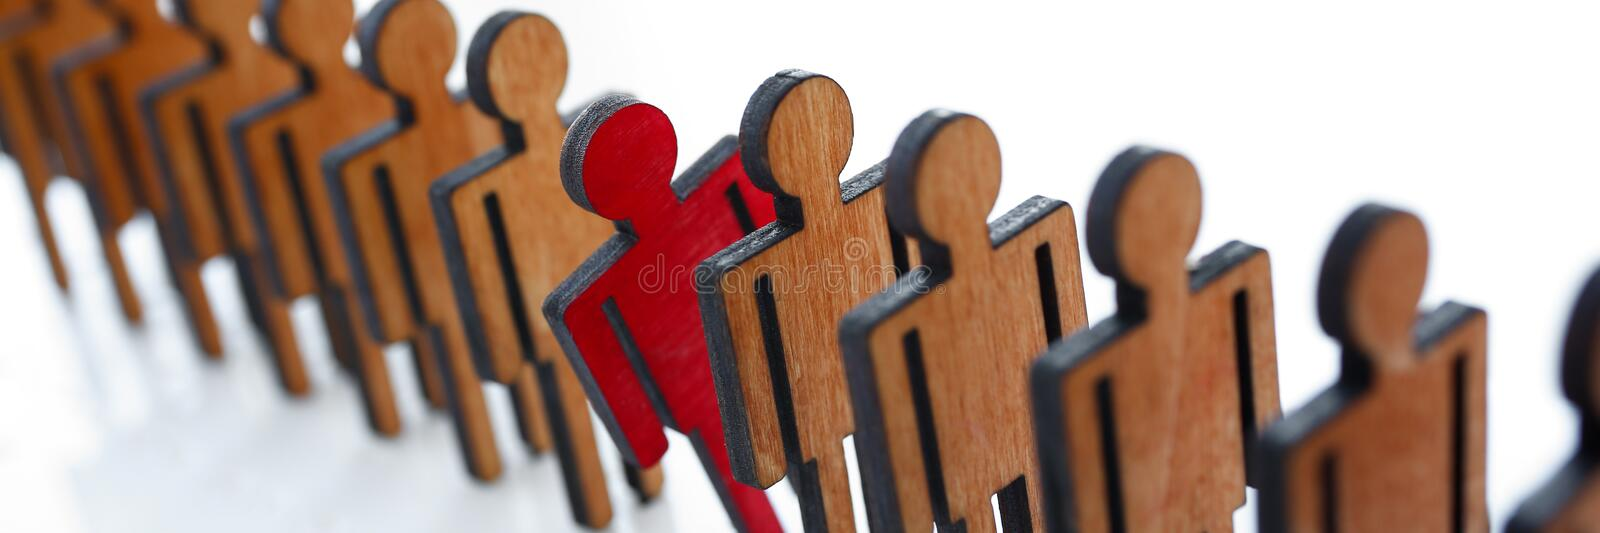 Male red plastic toy businessman silhouette. Wooden figure background closeup. Manipulate work recruitment transfer labour inspectorate experience exchange man stock images